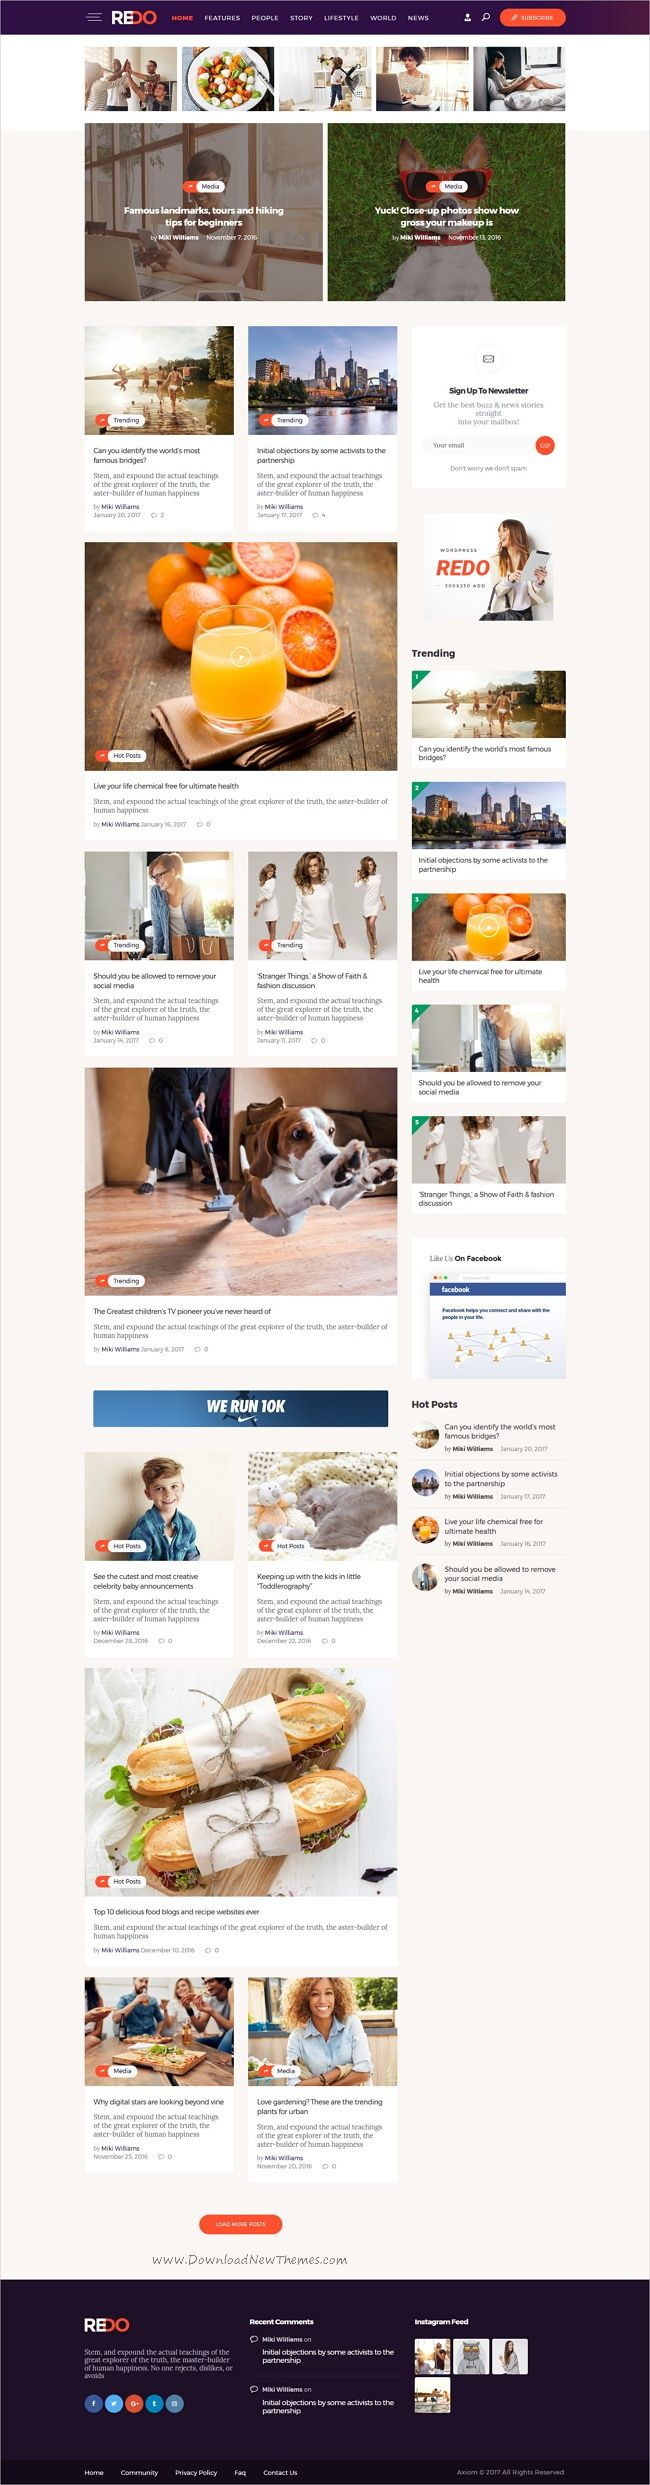 Redo is a wonderful responsive #WordPress theme for News, personal blog, #magazine and review #portals website download now➩ https://themeforest.net/item/redo-personal-blog-magazine-review-portal/19582503?ref=Datasata